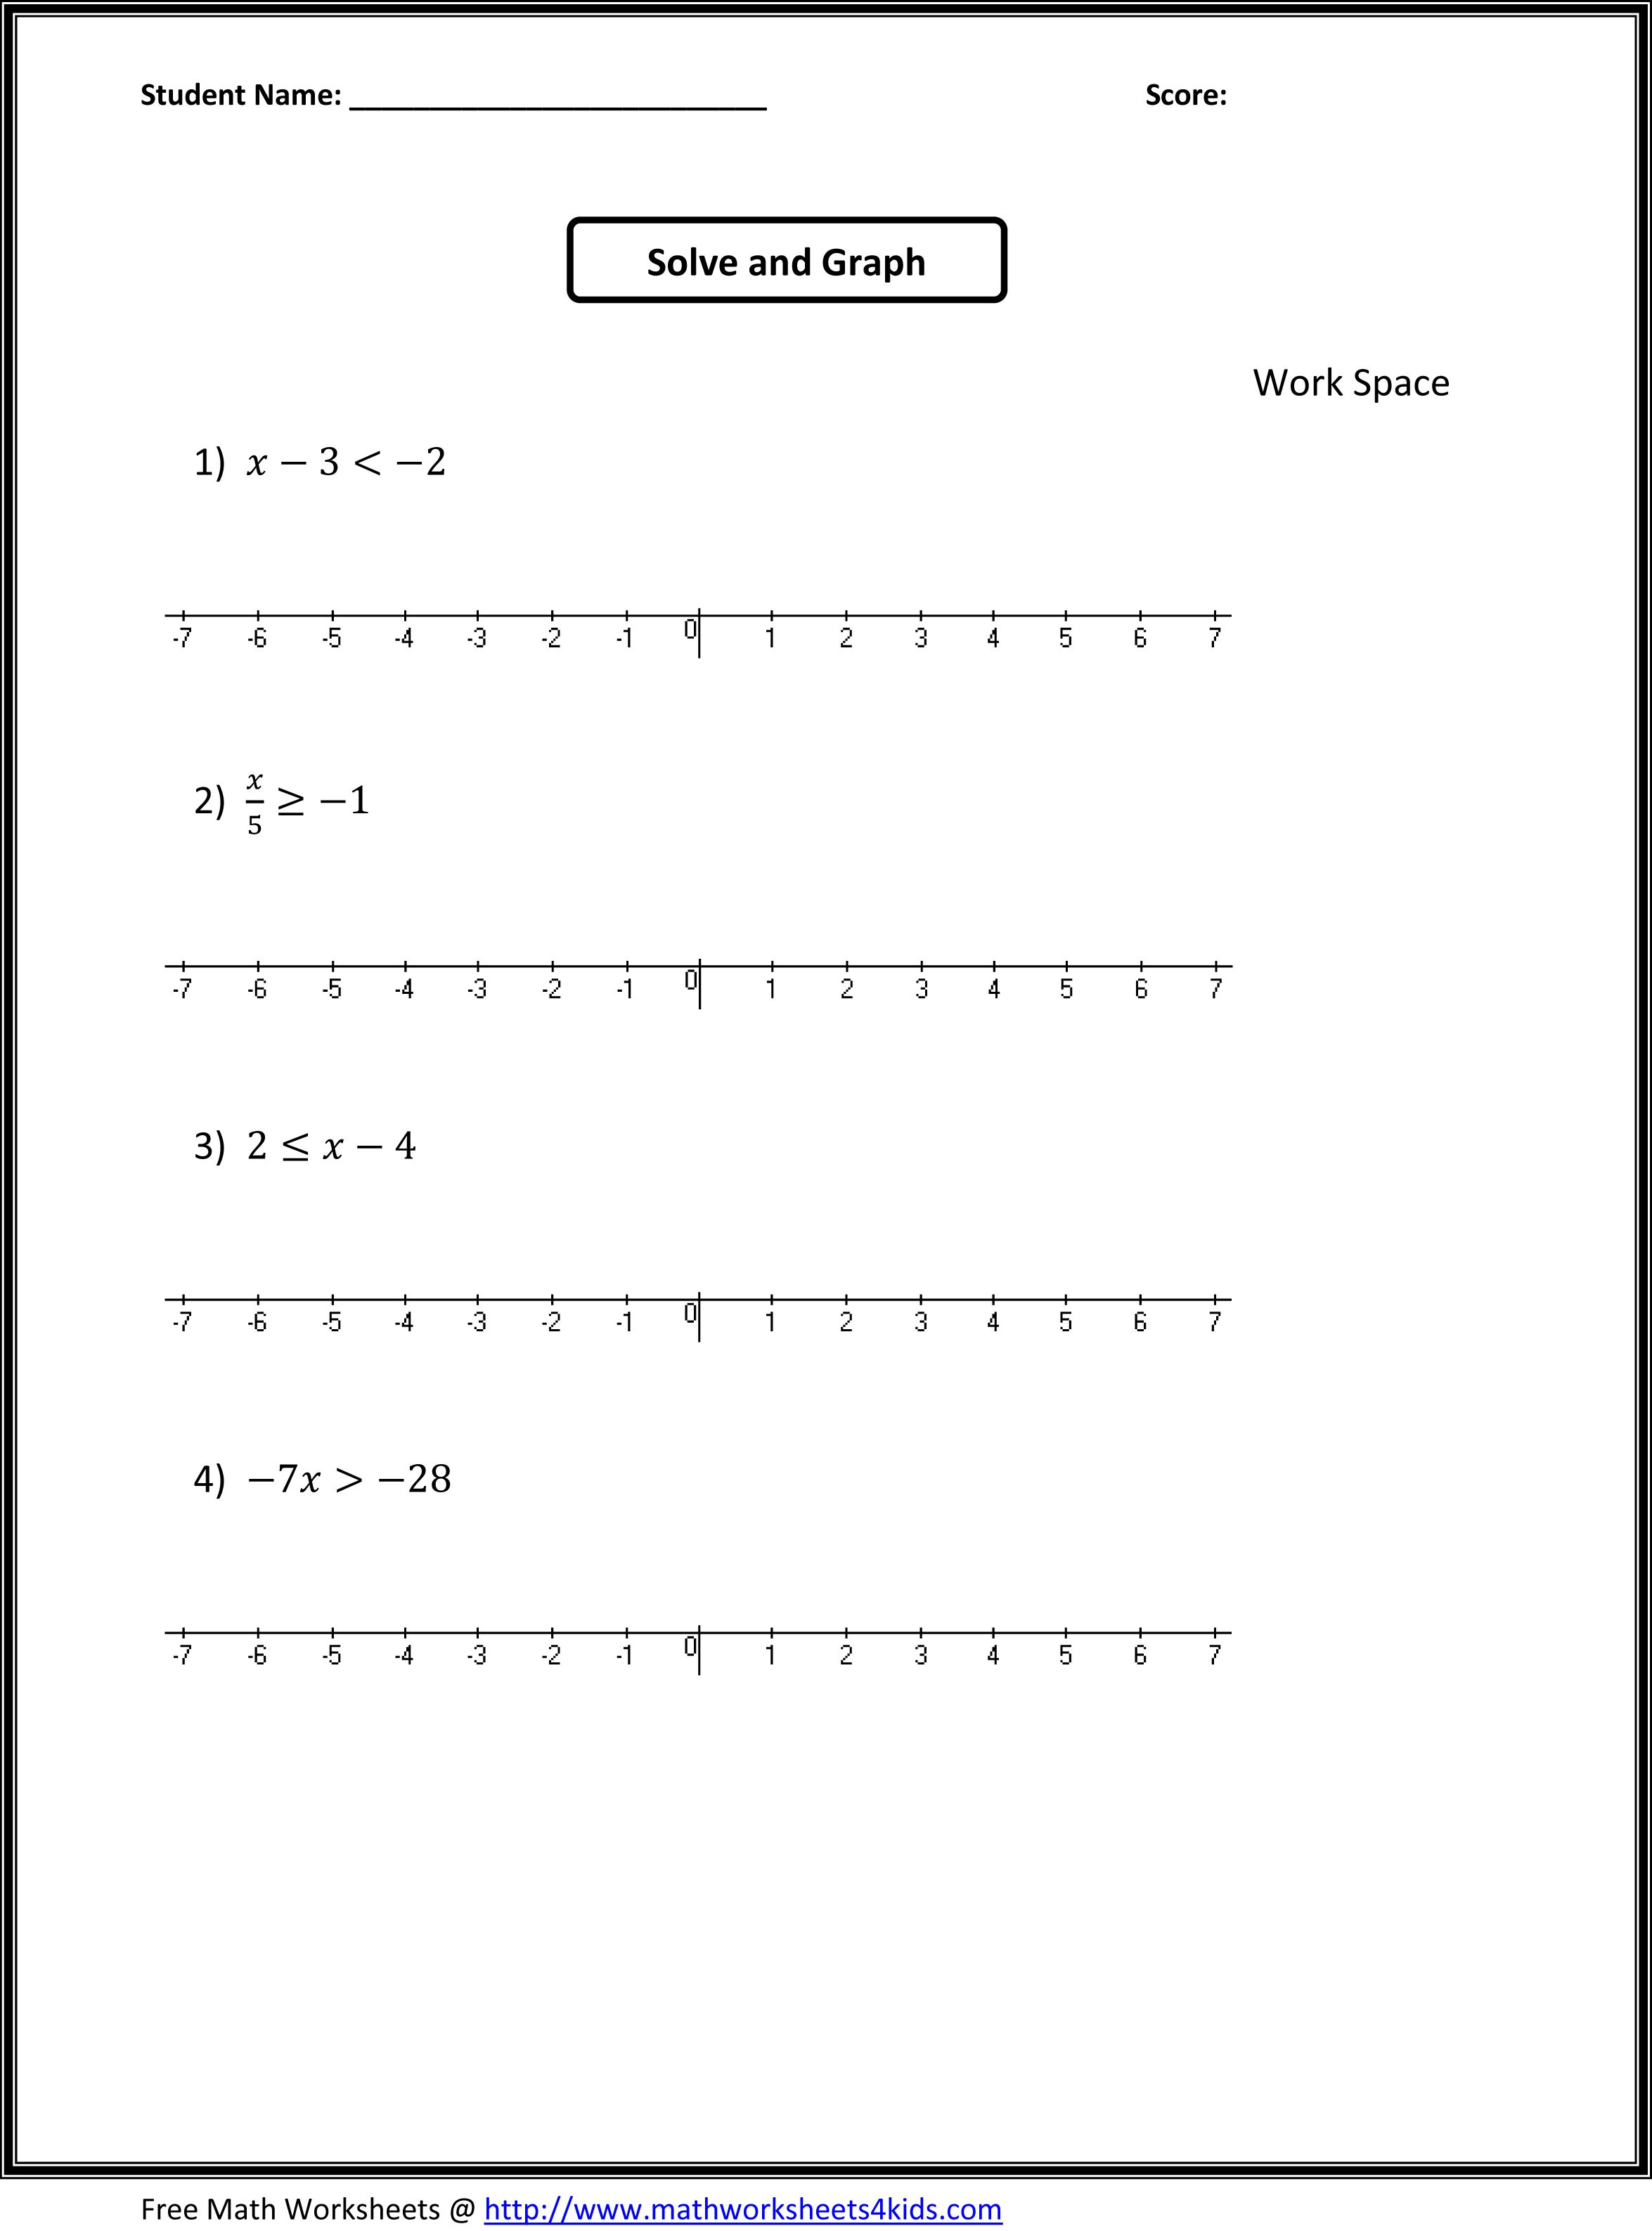 Worksheets 8th Grade Math Worksheets Pdf 7th grade algebra worksheets math places worksheets